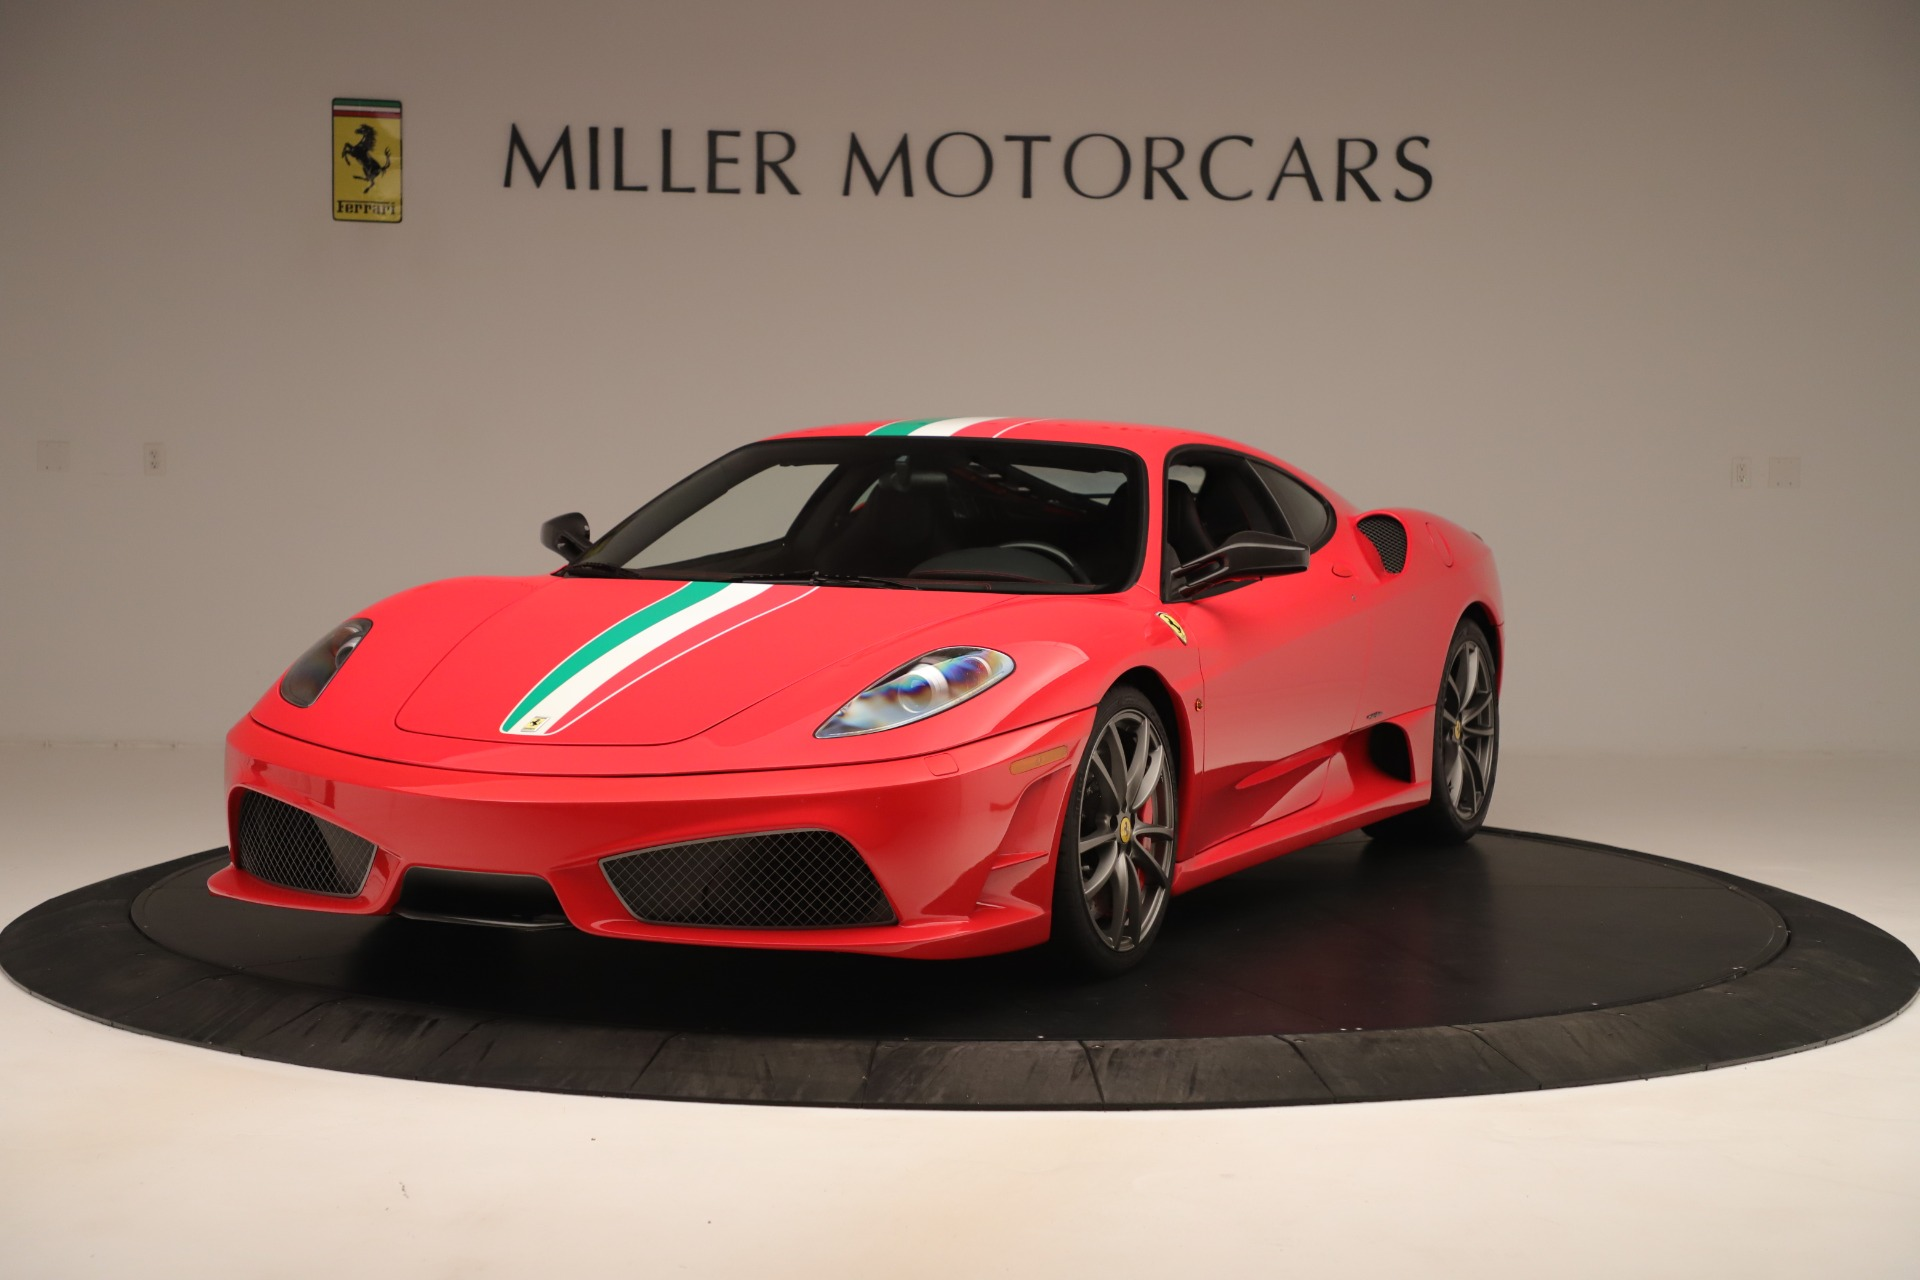 Used 2008 Ferrari F430 Scuderia for sale Sold at Aston Martin of Greenwich in Greenwich CT 06830 1